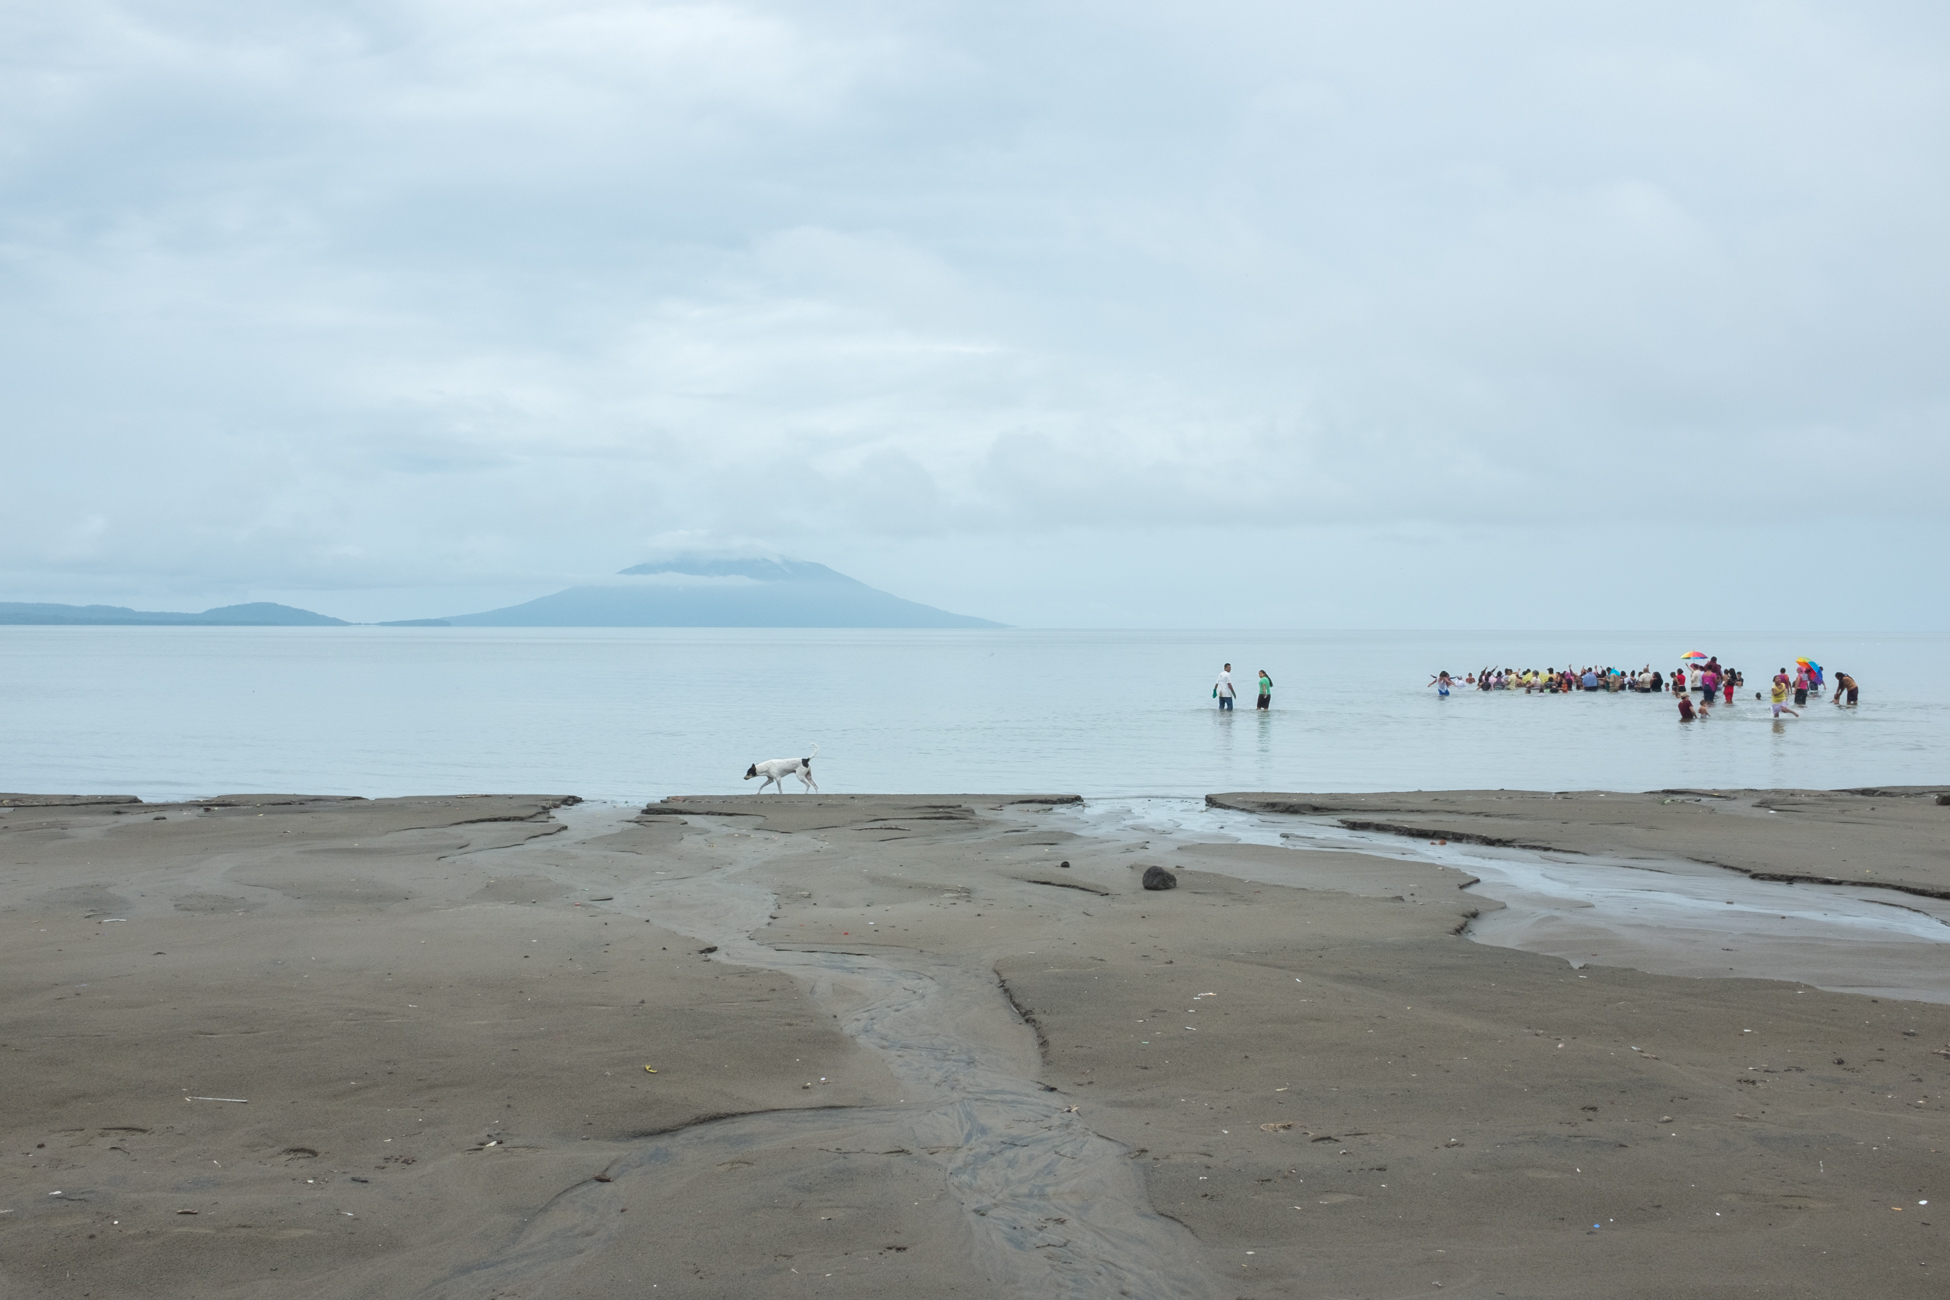 A babtism on the shores of Lake Nicaragua with the twin peaks of Ometepe Island in the distance near Rivas, Nicaragua